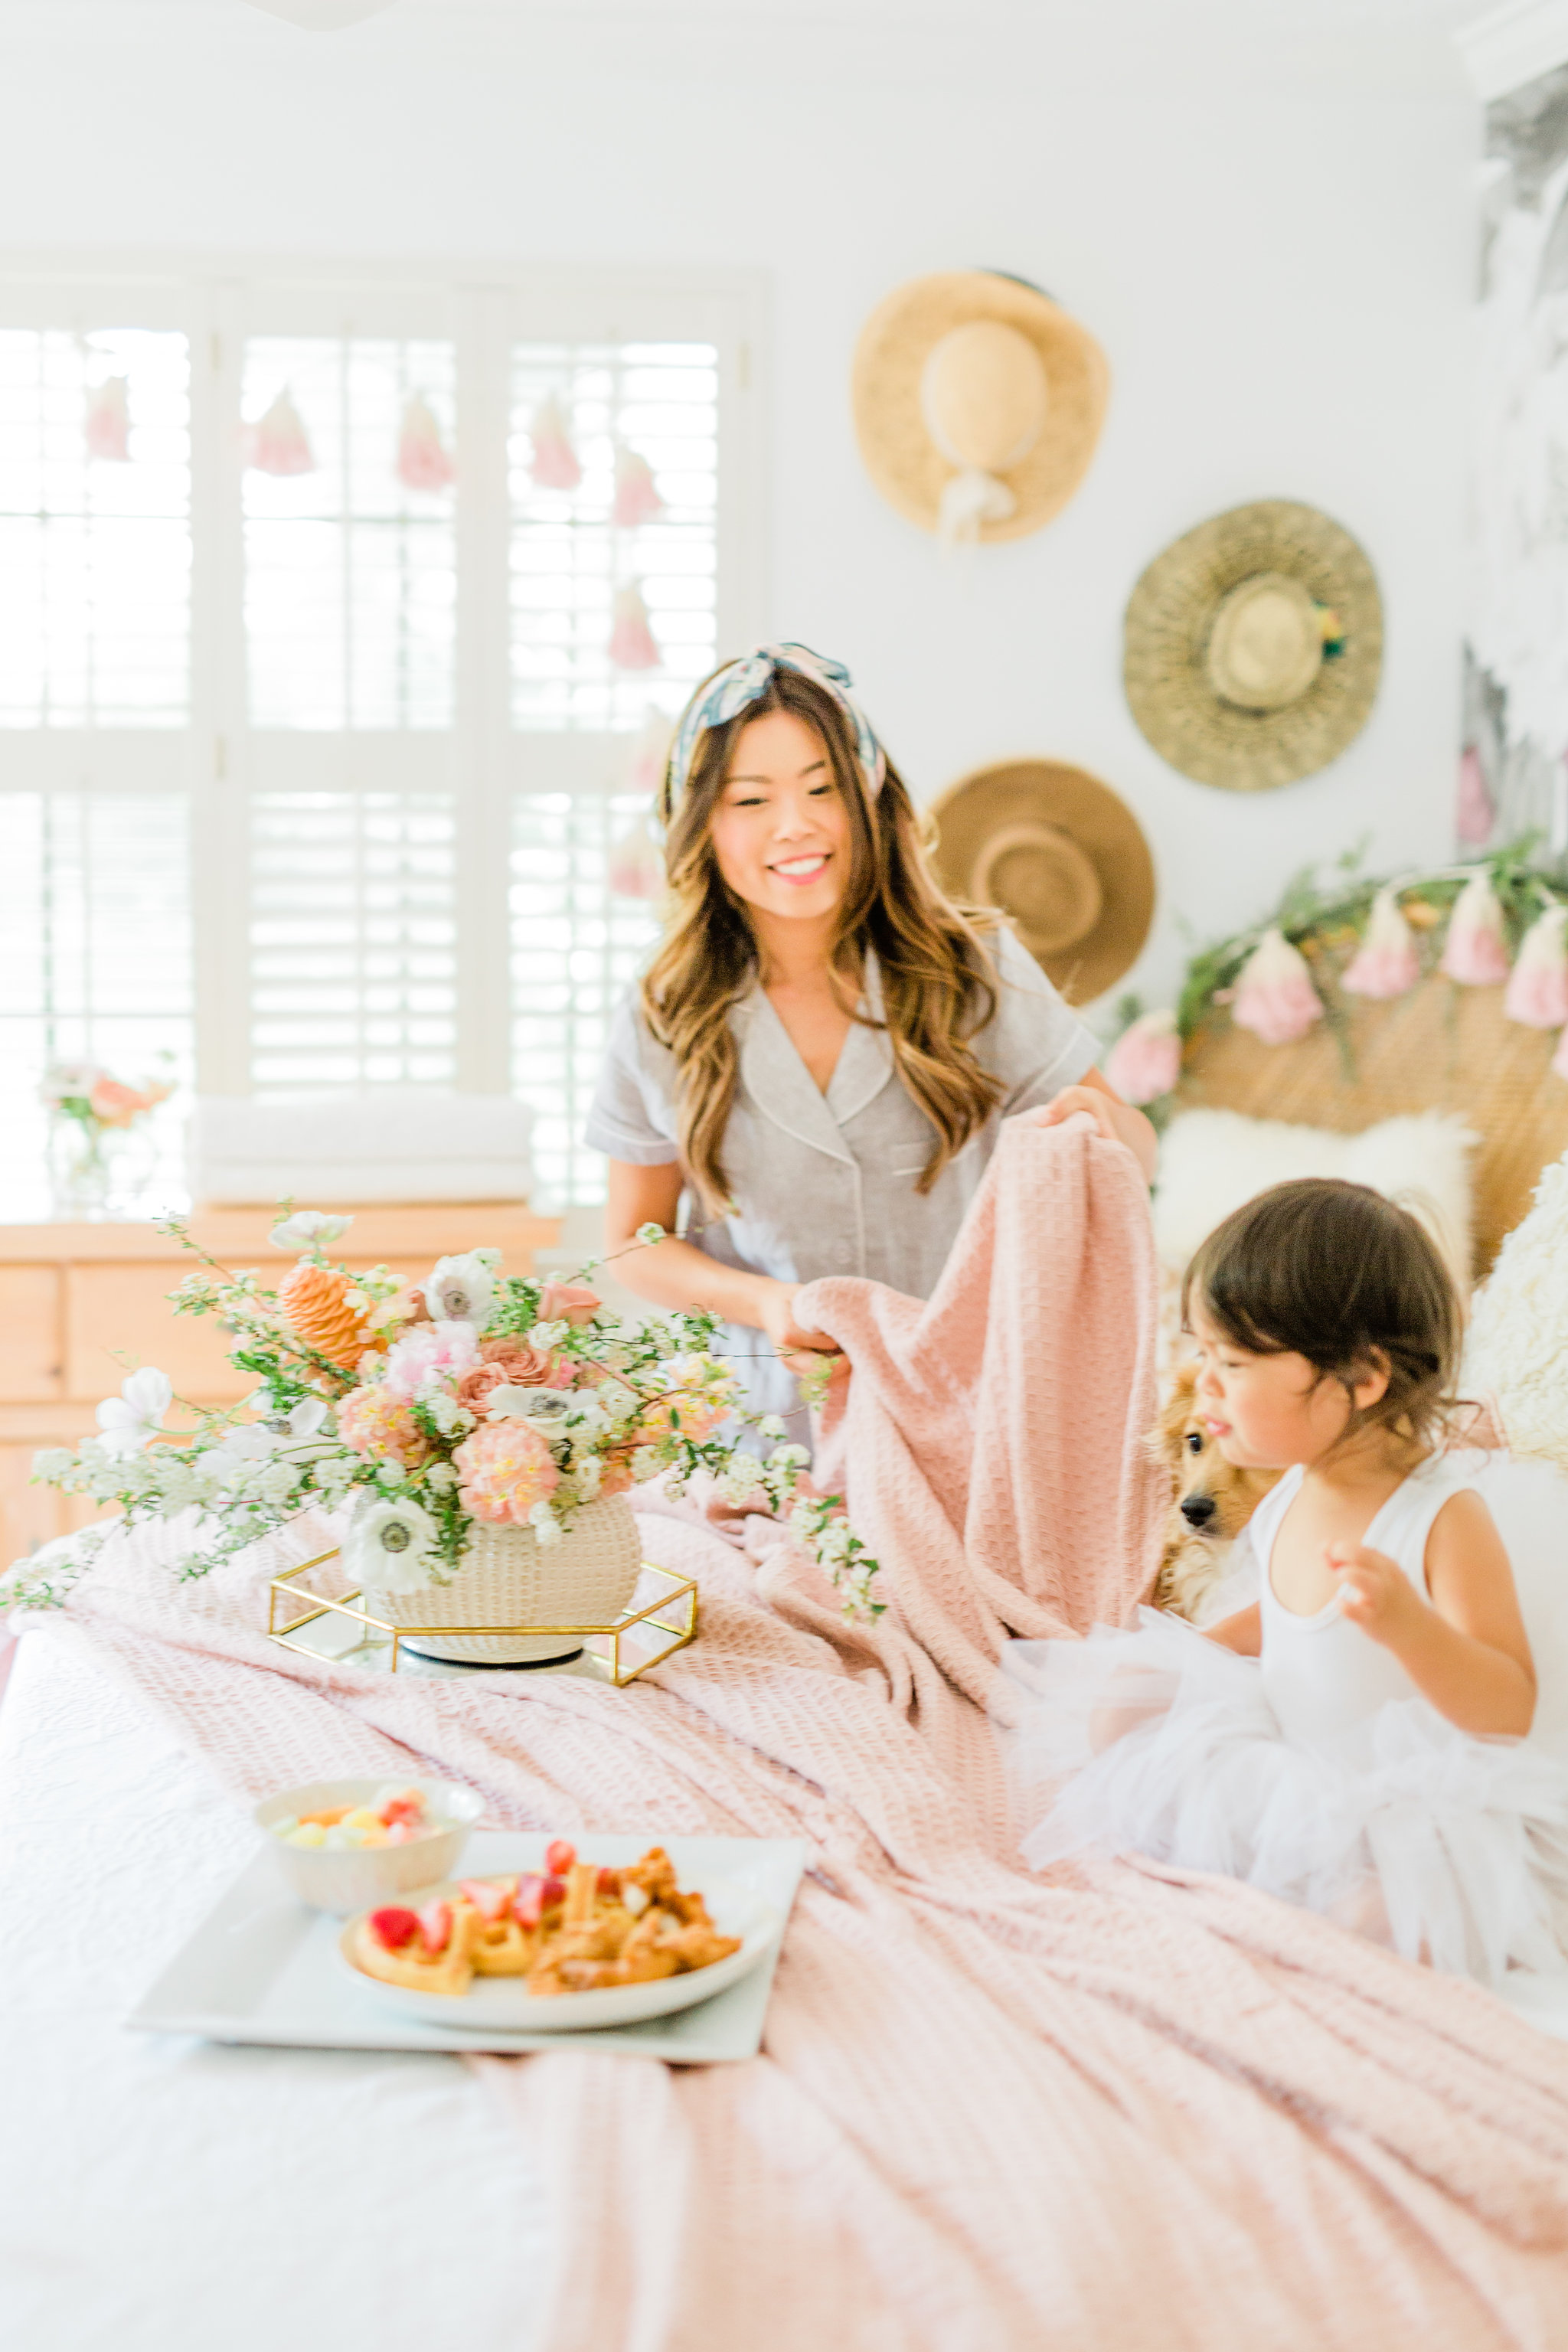 Neutral Blush and White Spring Master Bedroom Makeover, How to make and dress a bed in 3 steps